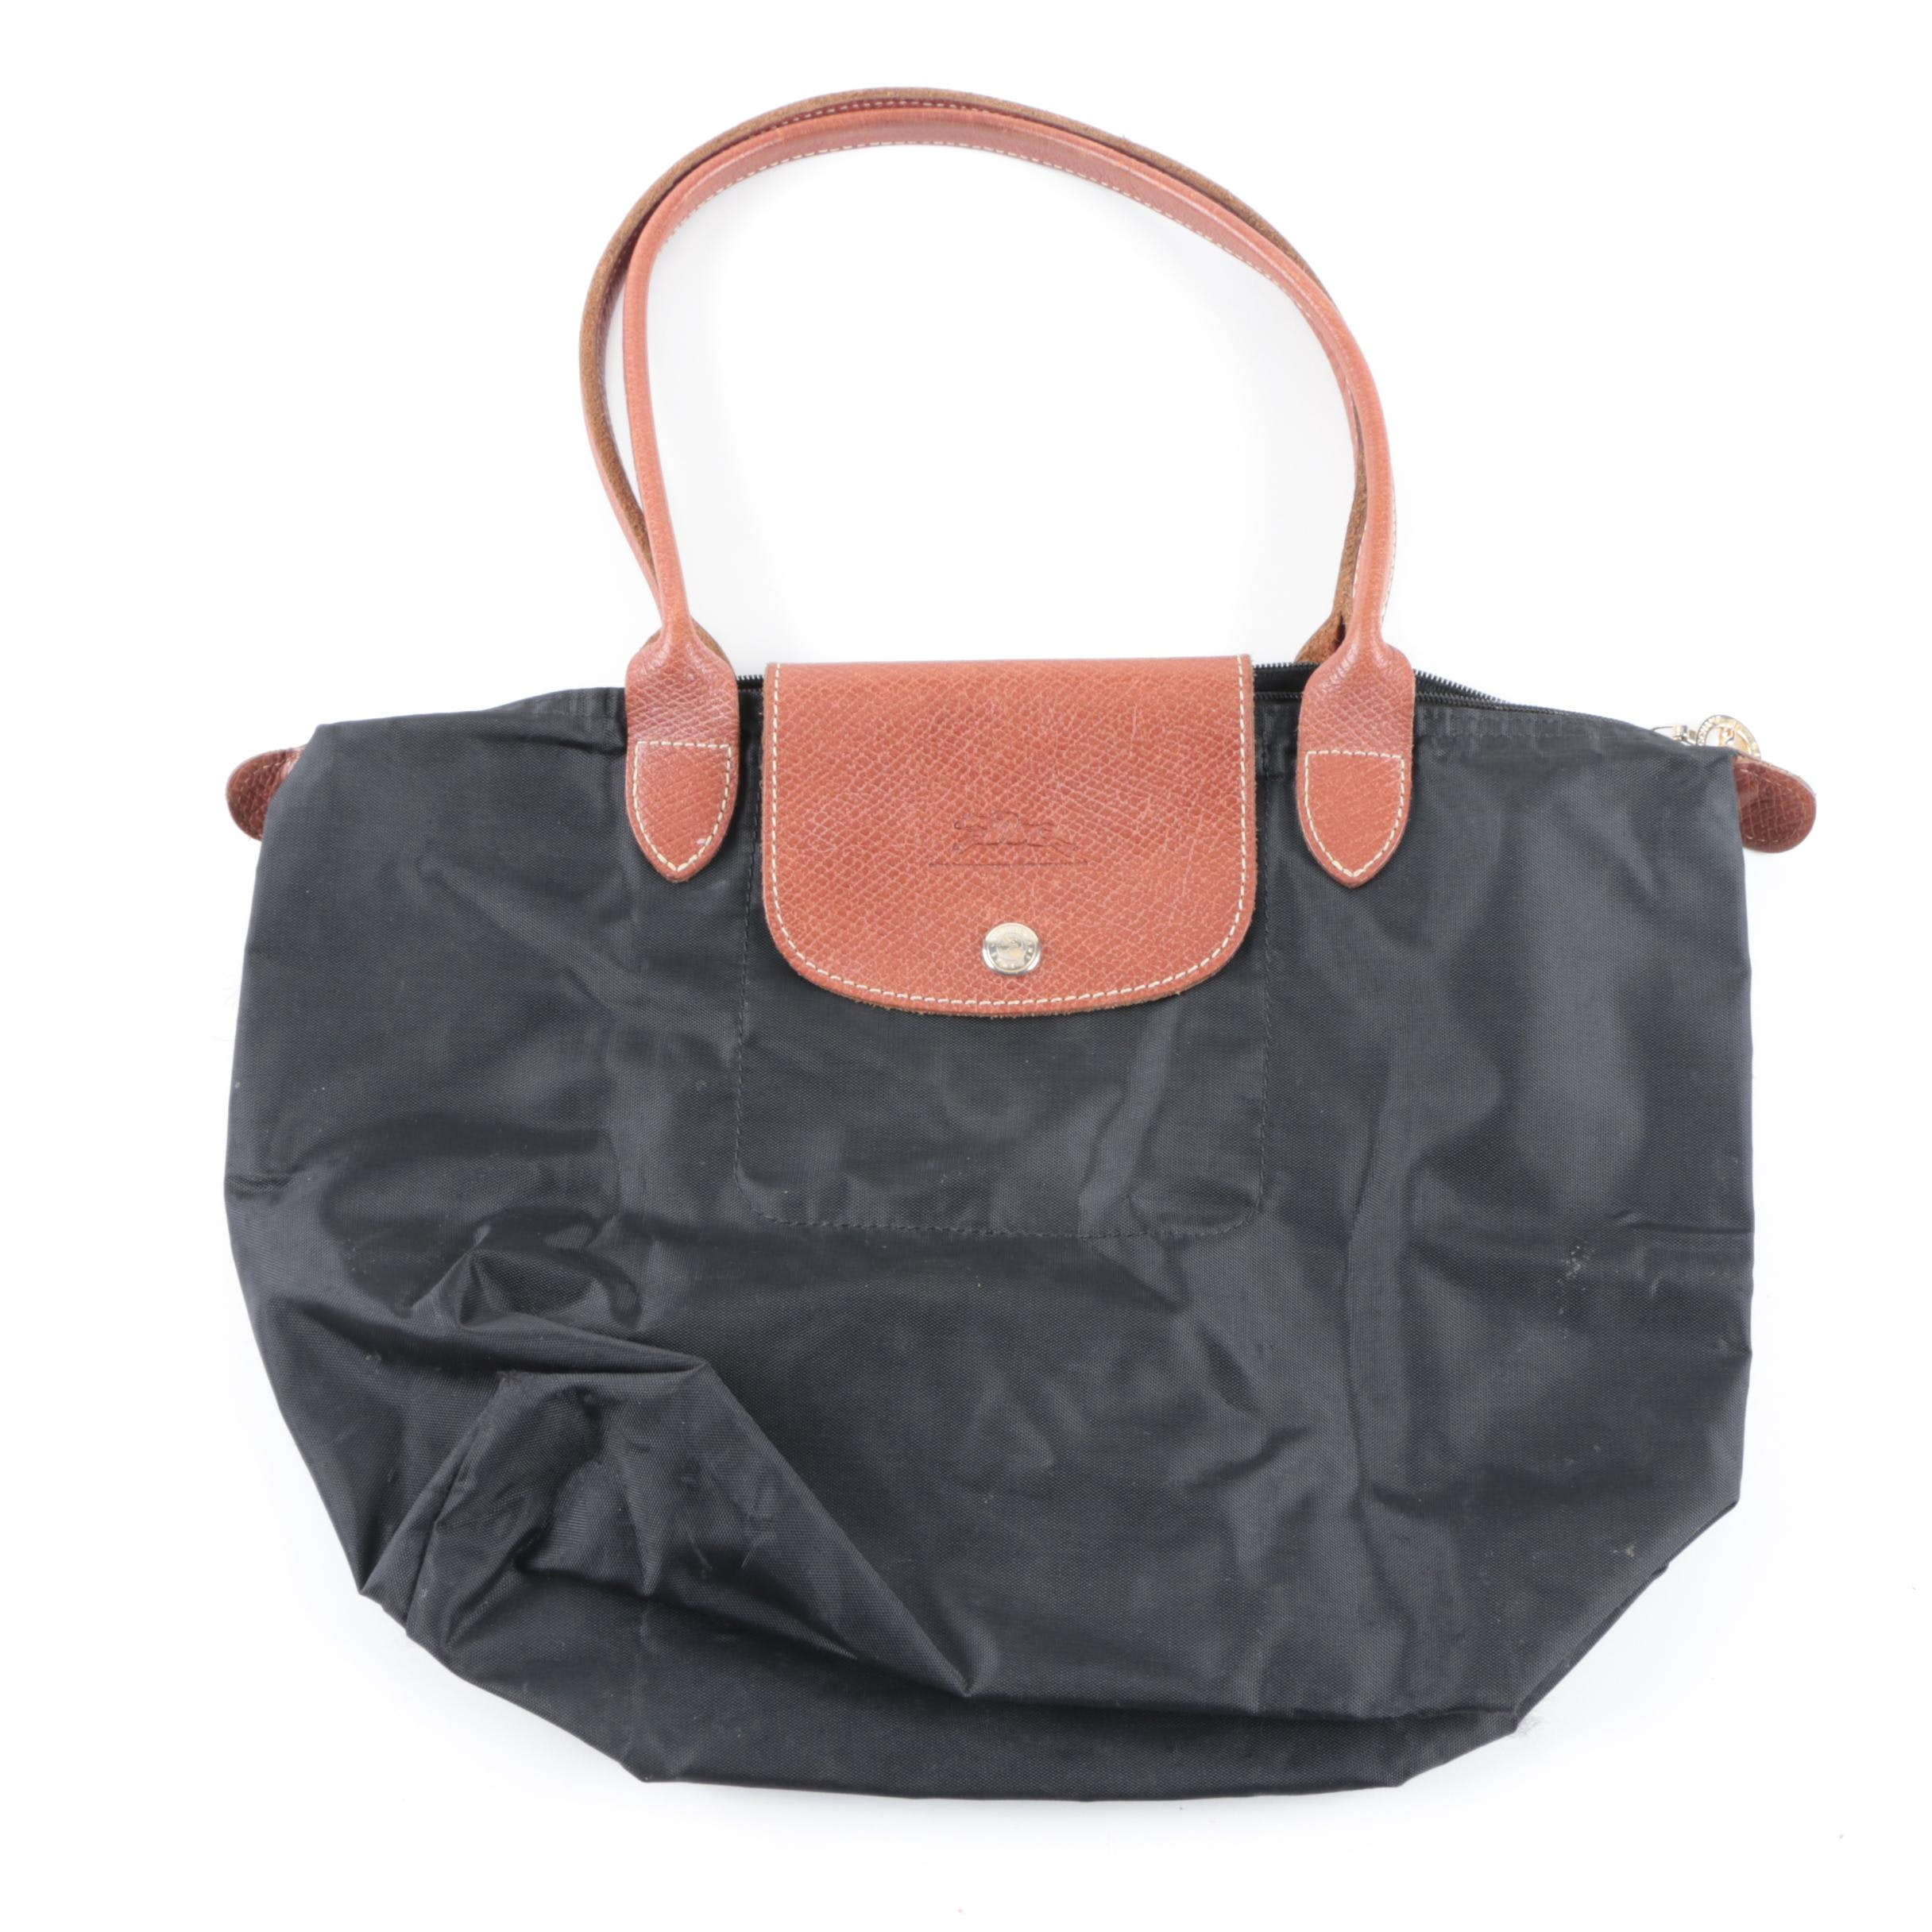 Longchamp Le Pliage Black Nylon tote